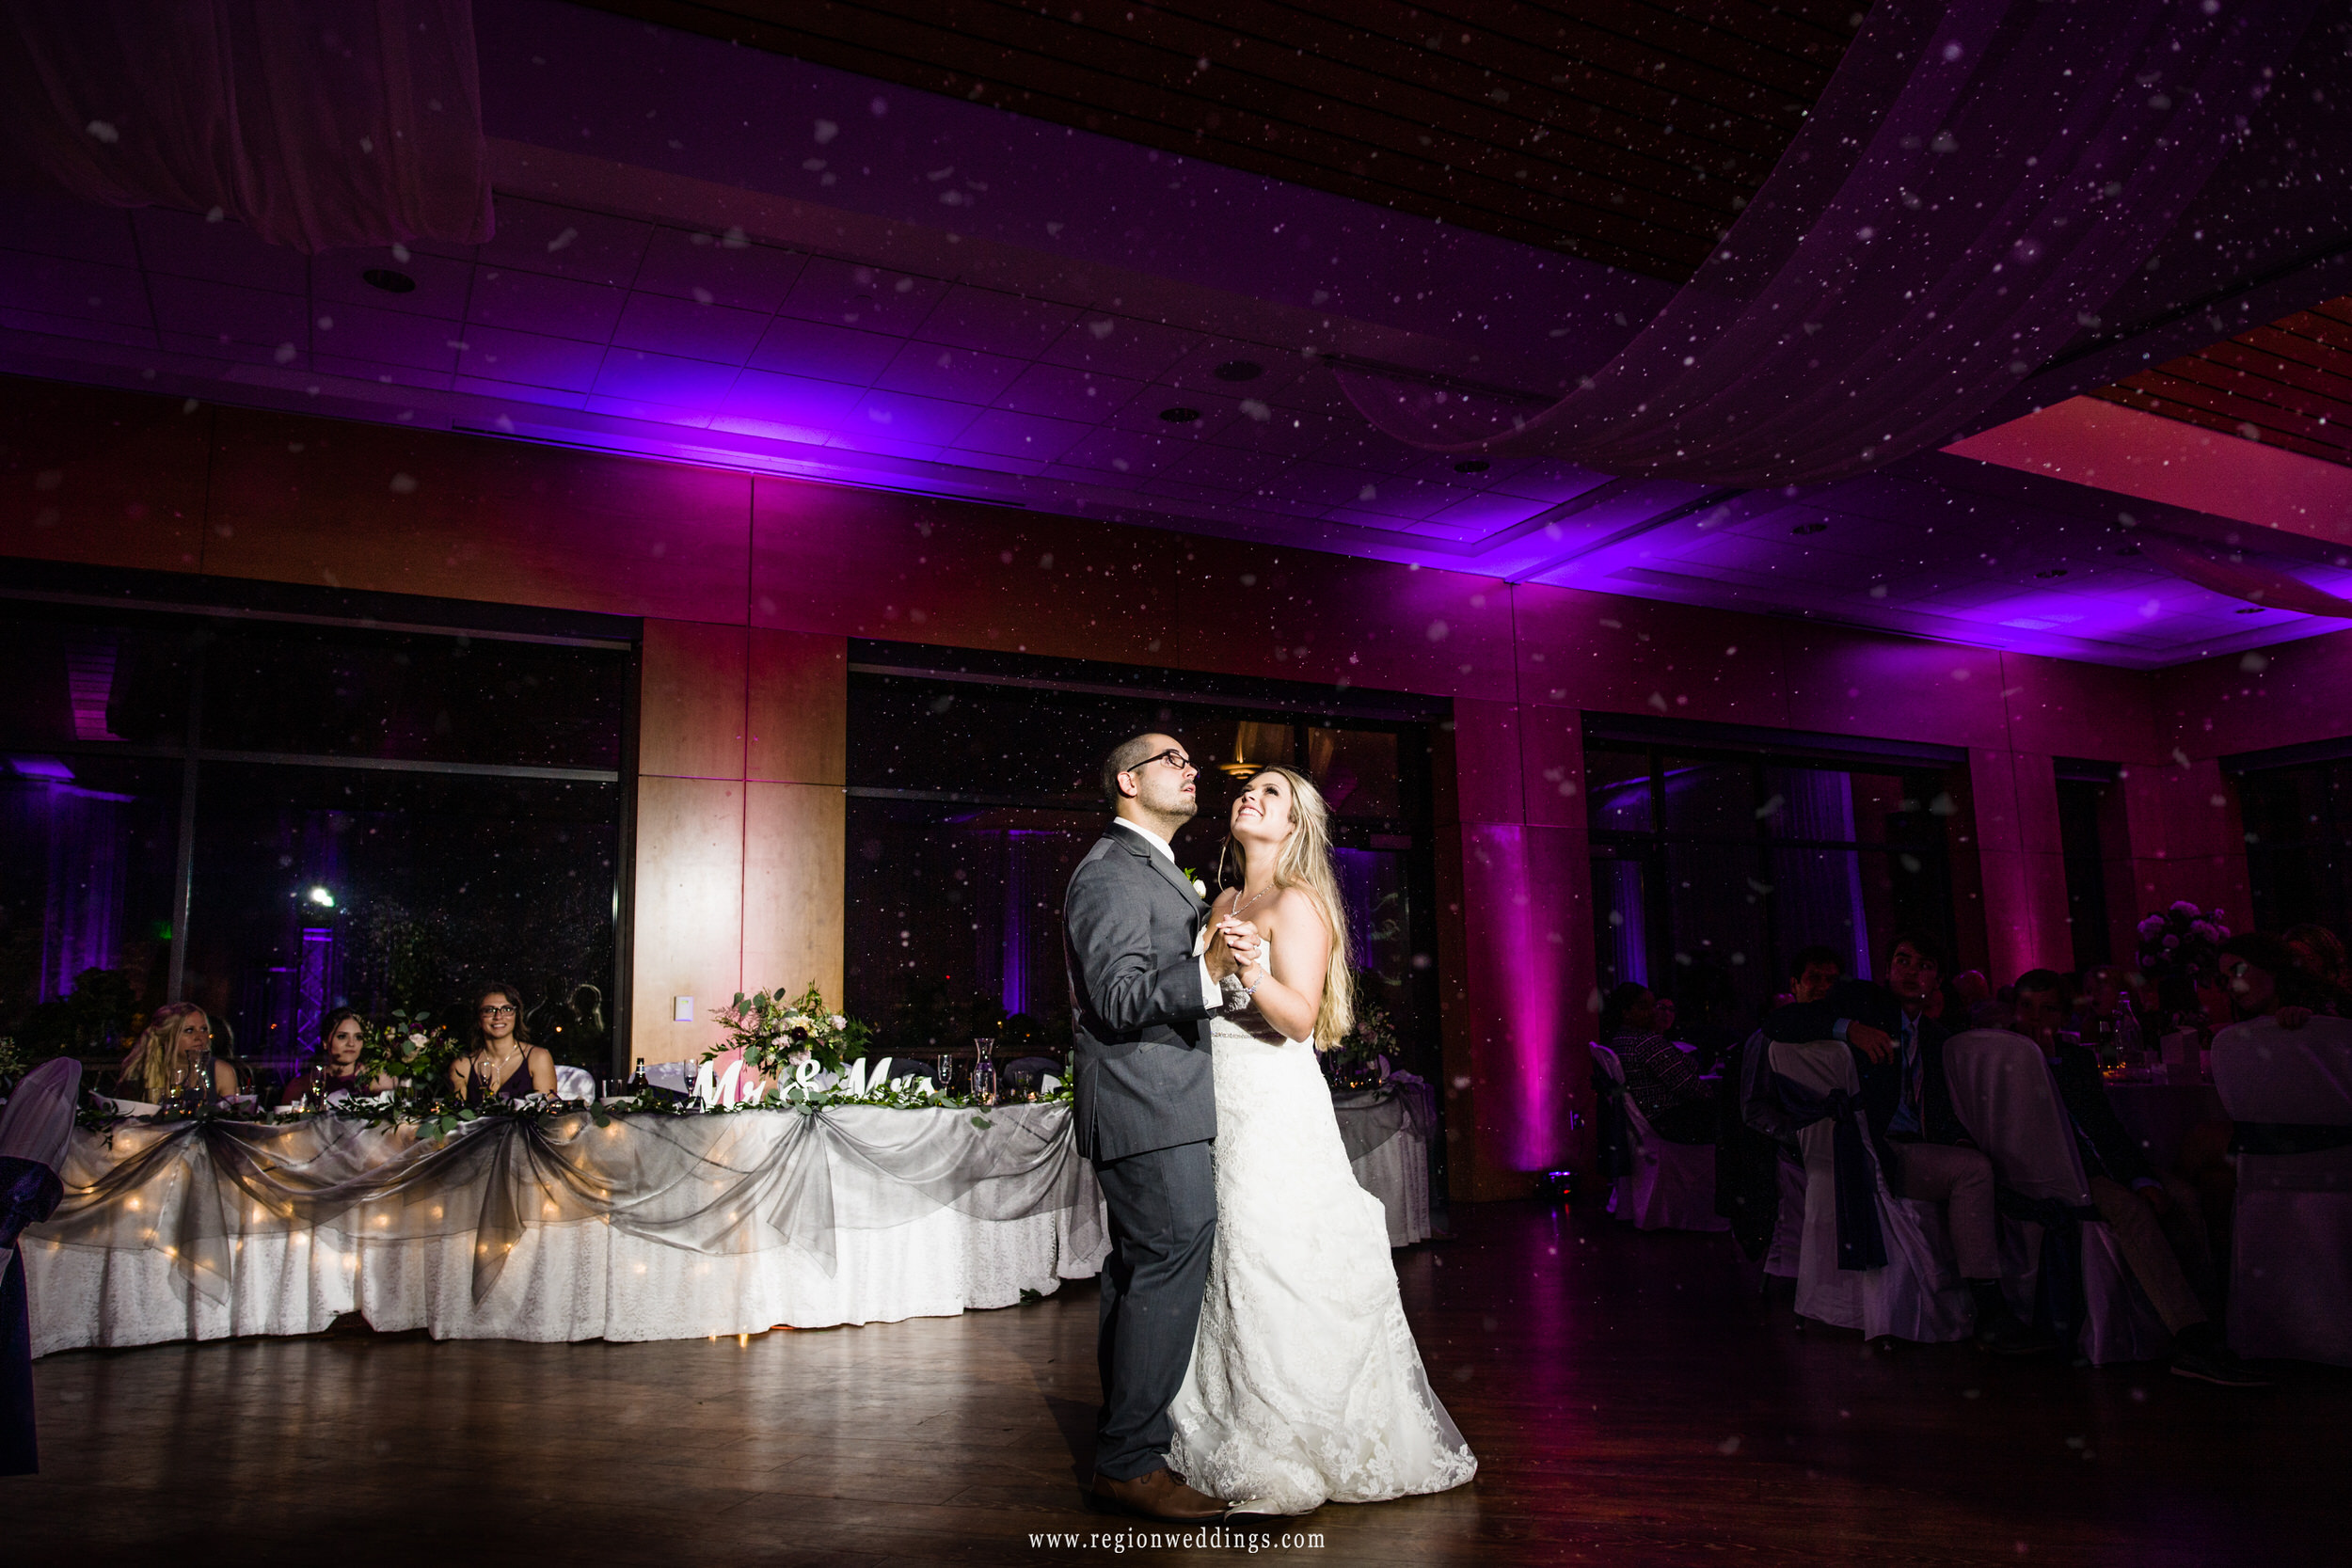 Snow descends upon the dance floor at a Centennial Park clubhouse wedding reception.